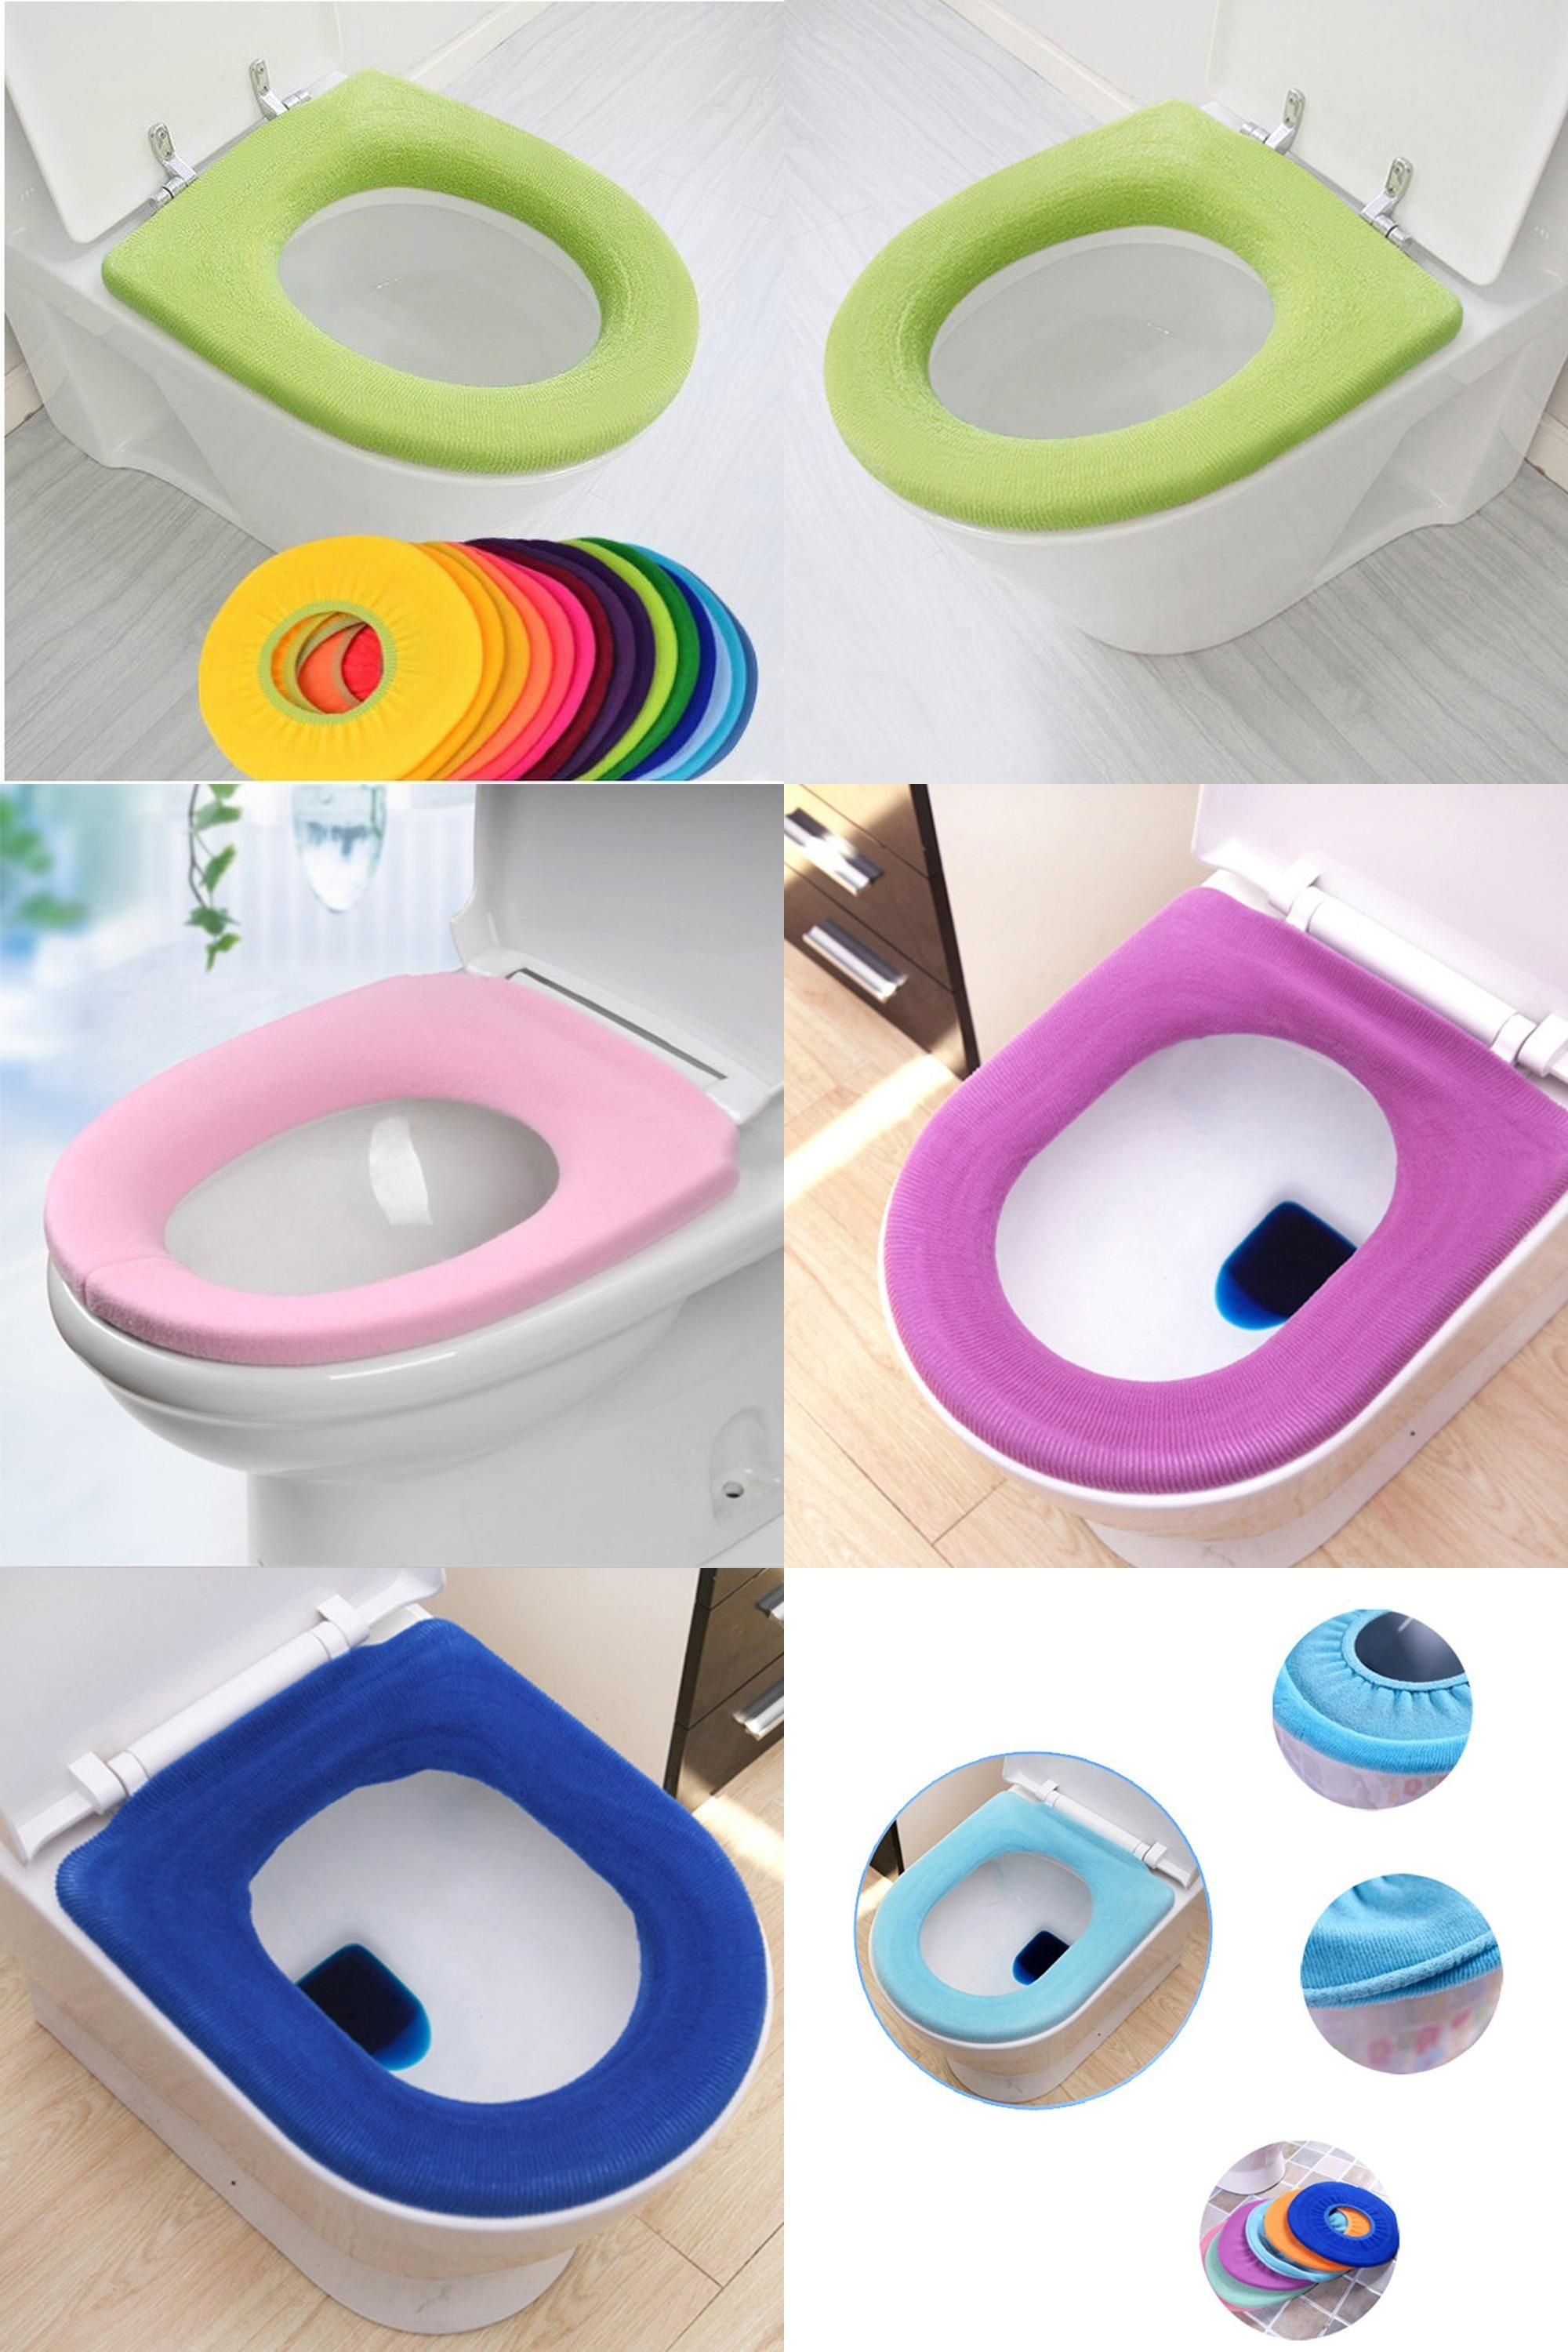 Visit To Buy Random Color Comfortable Toilet Seat Cover For Bathroom Products Pedestal Pan Cushion Pads Lycra Use Toilet Seat Cover Cushion Pads Toilet Seat